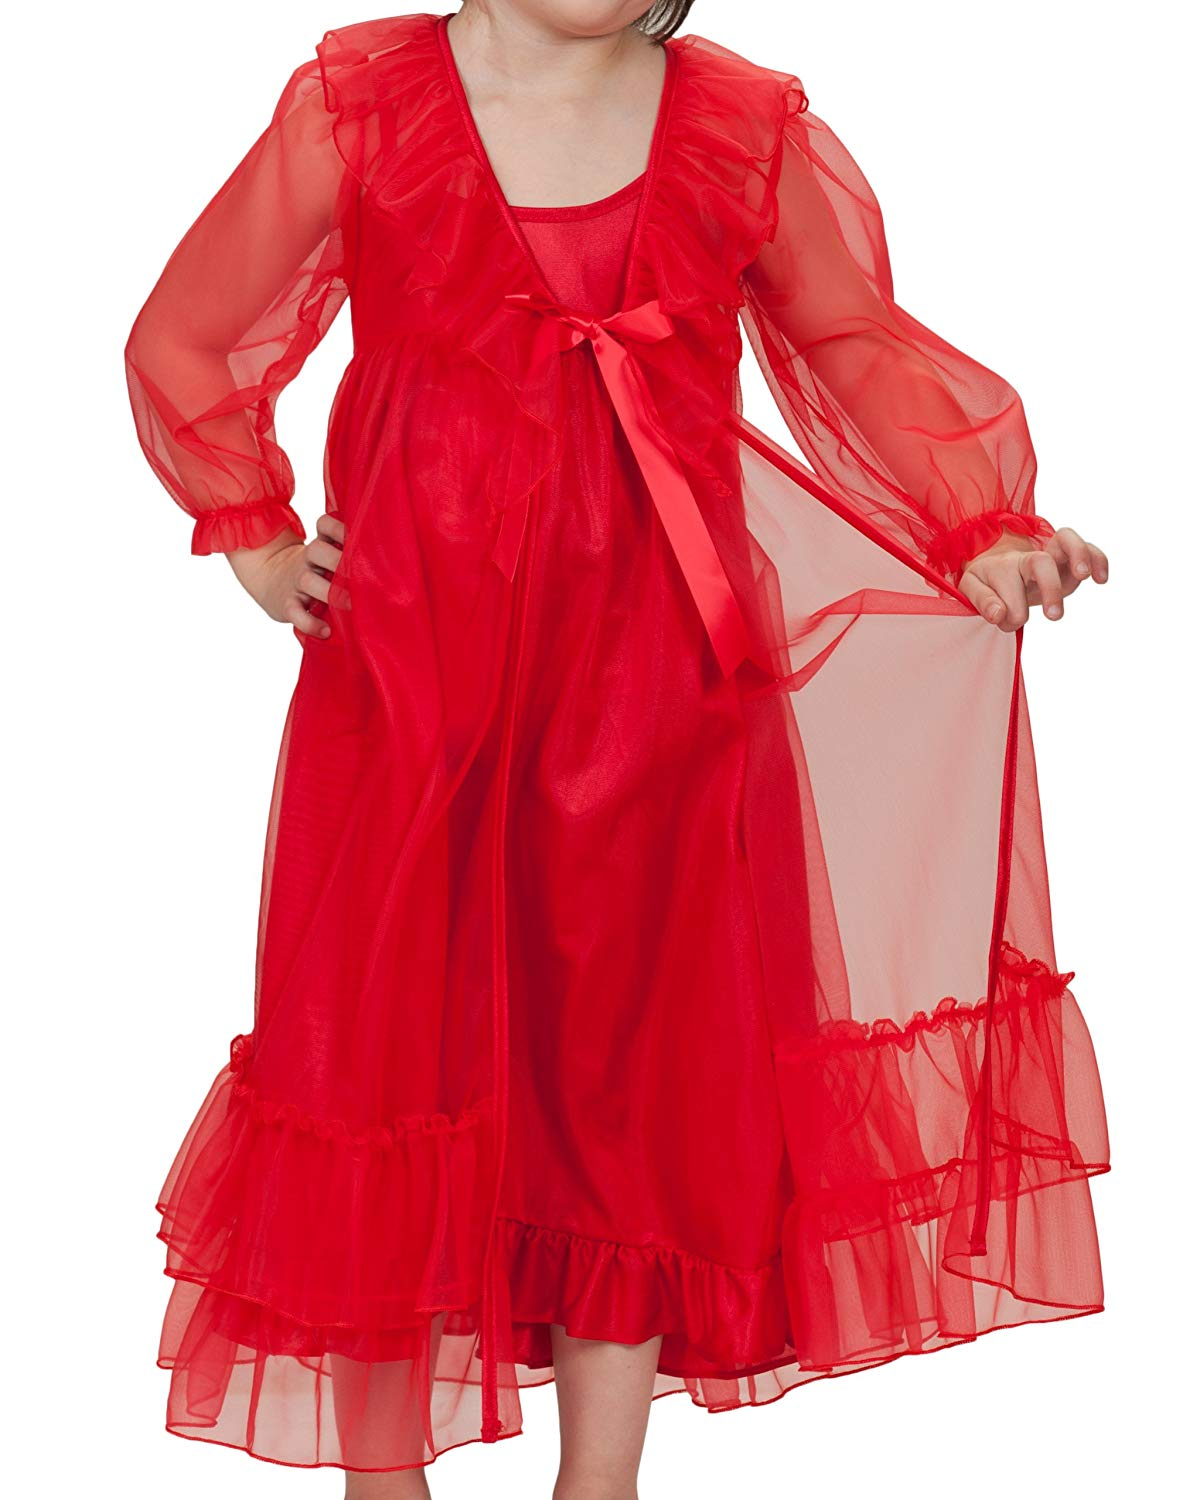 3dfa6ea940 Get Quotations · Laura Dare Big Girls Frilly Peignoir Nightgown and Robe Set  w Scrunchie